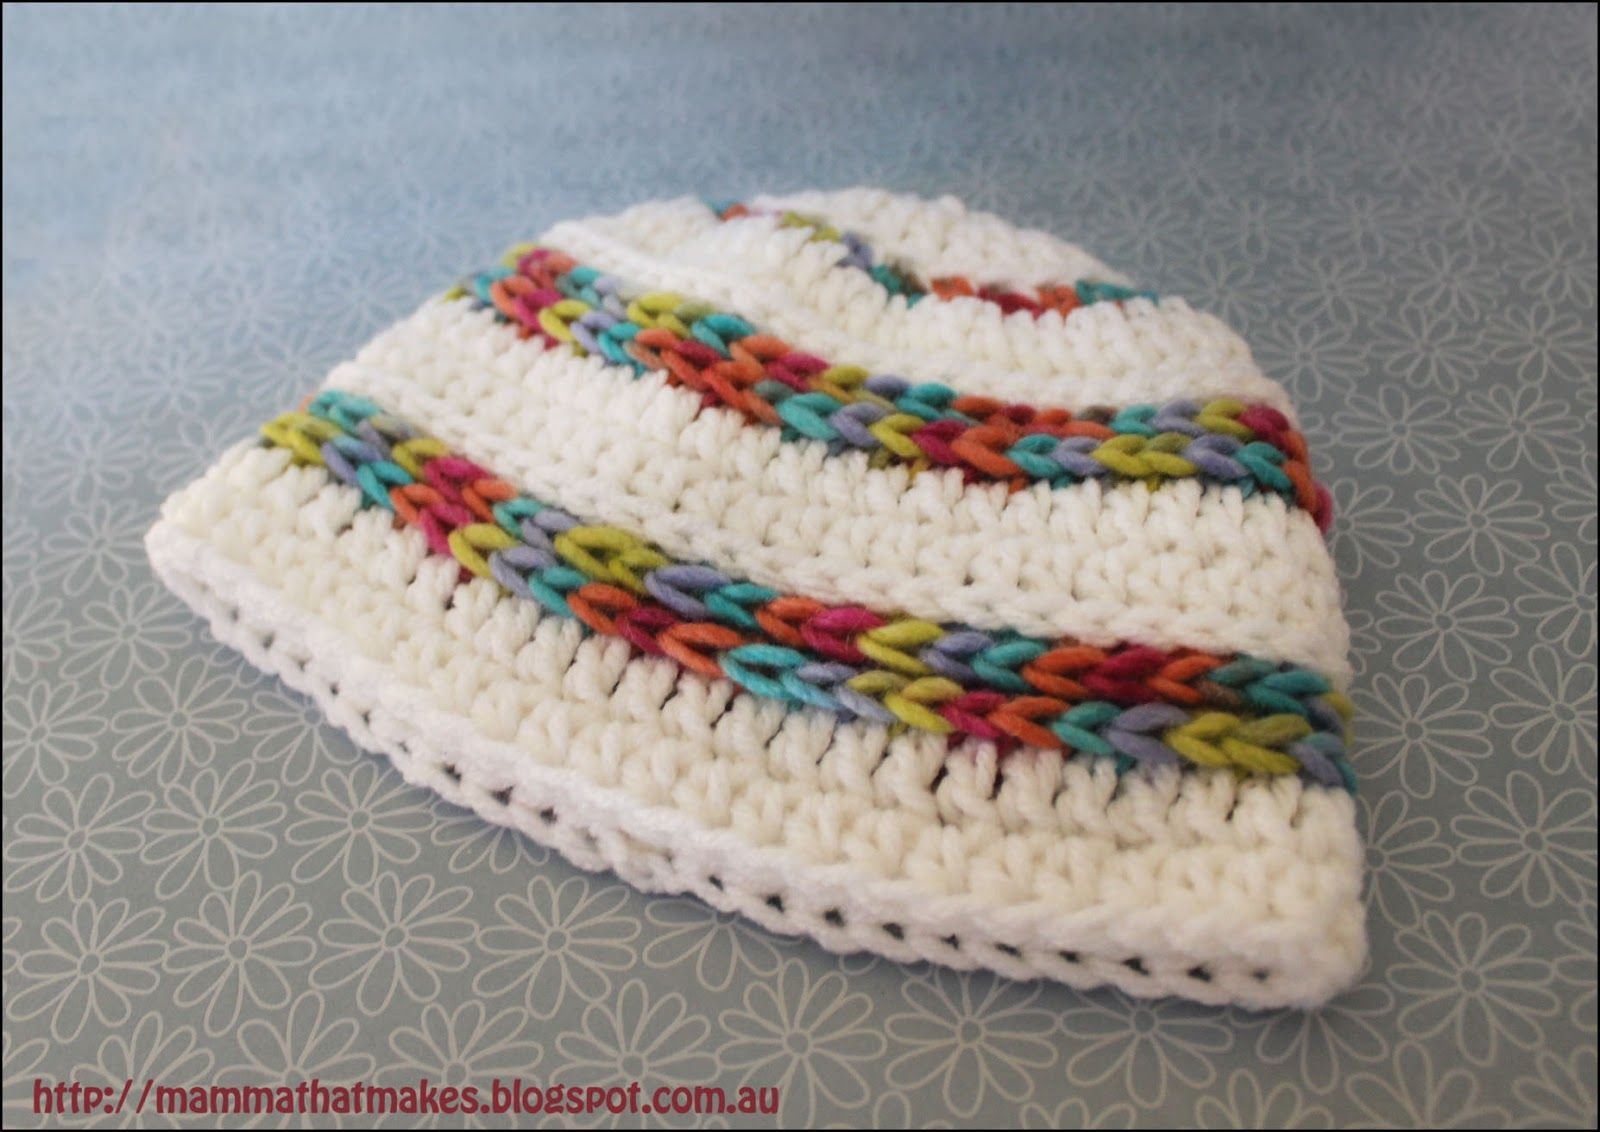 Mamma That Makes: The Mathieu Beanie | Preemie knits/crochet/sewing ...